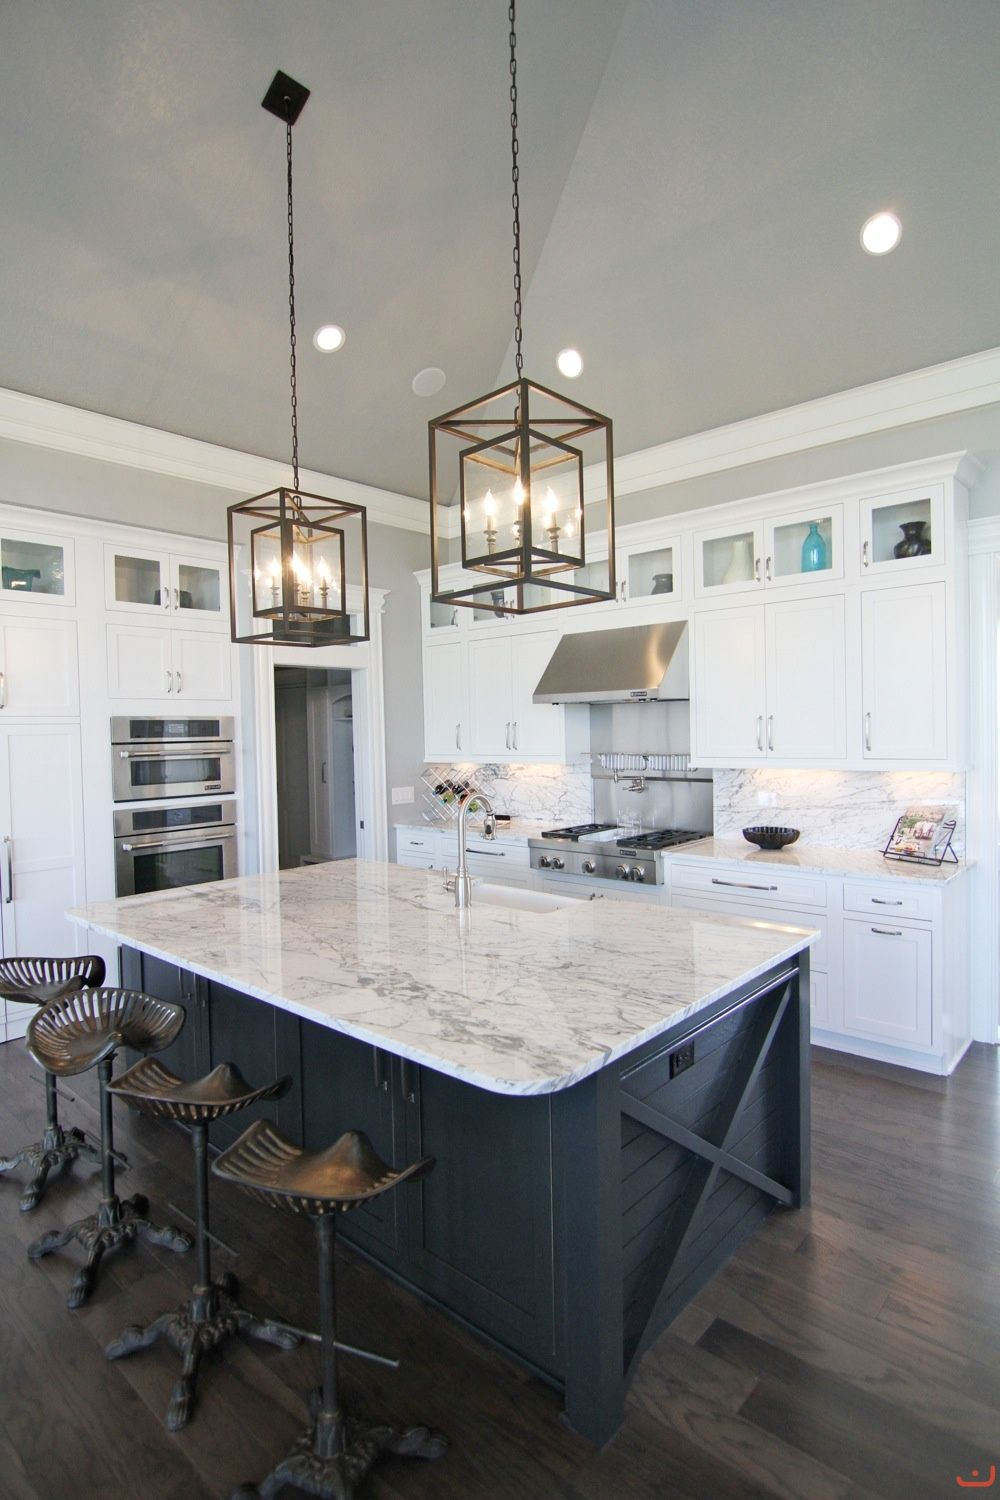 top cabinets, stove backsplash, stone slab backsplash | . kitchen ...